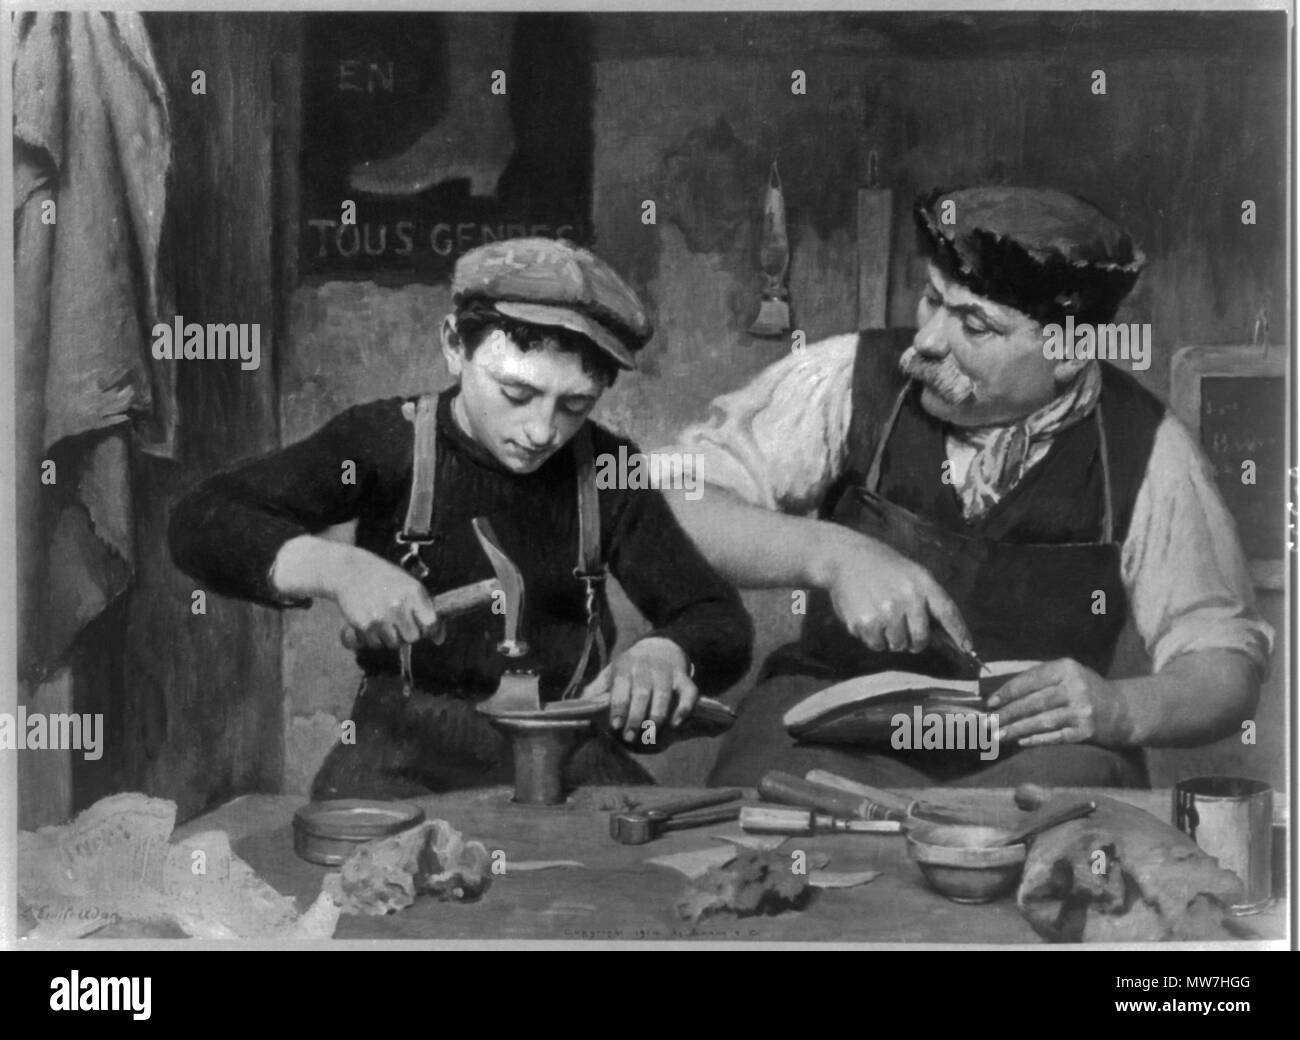 . English: Apprentice. Man and boy making shoes. circa 1914. Repro. of painting by (Louis-?)Emile Adan (1839-1937), copyrighted by Braun & Co., N.Y. 53 Apprenticeship - Stock Image